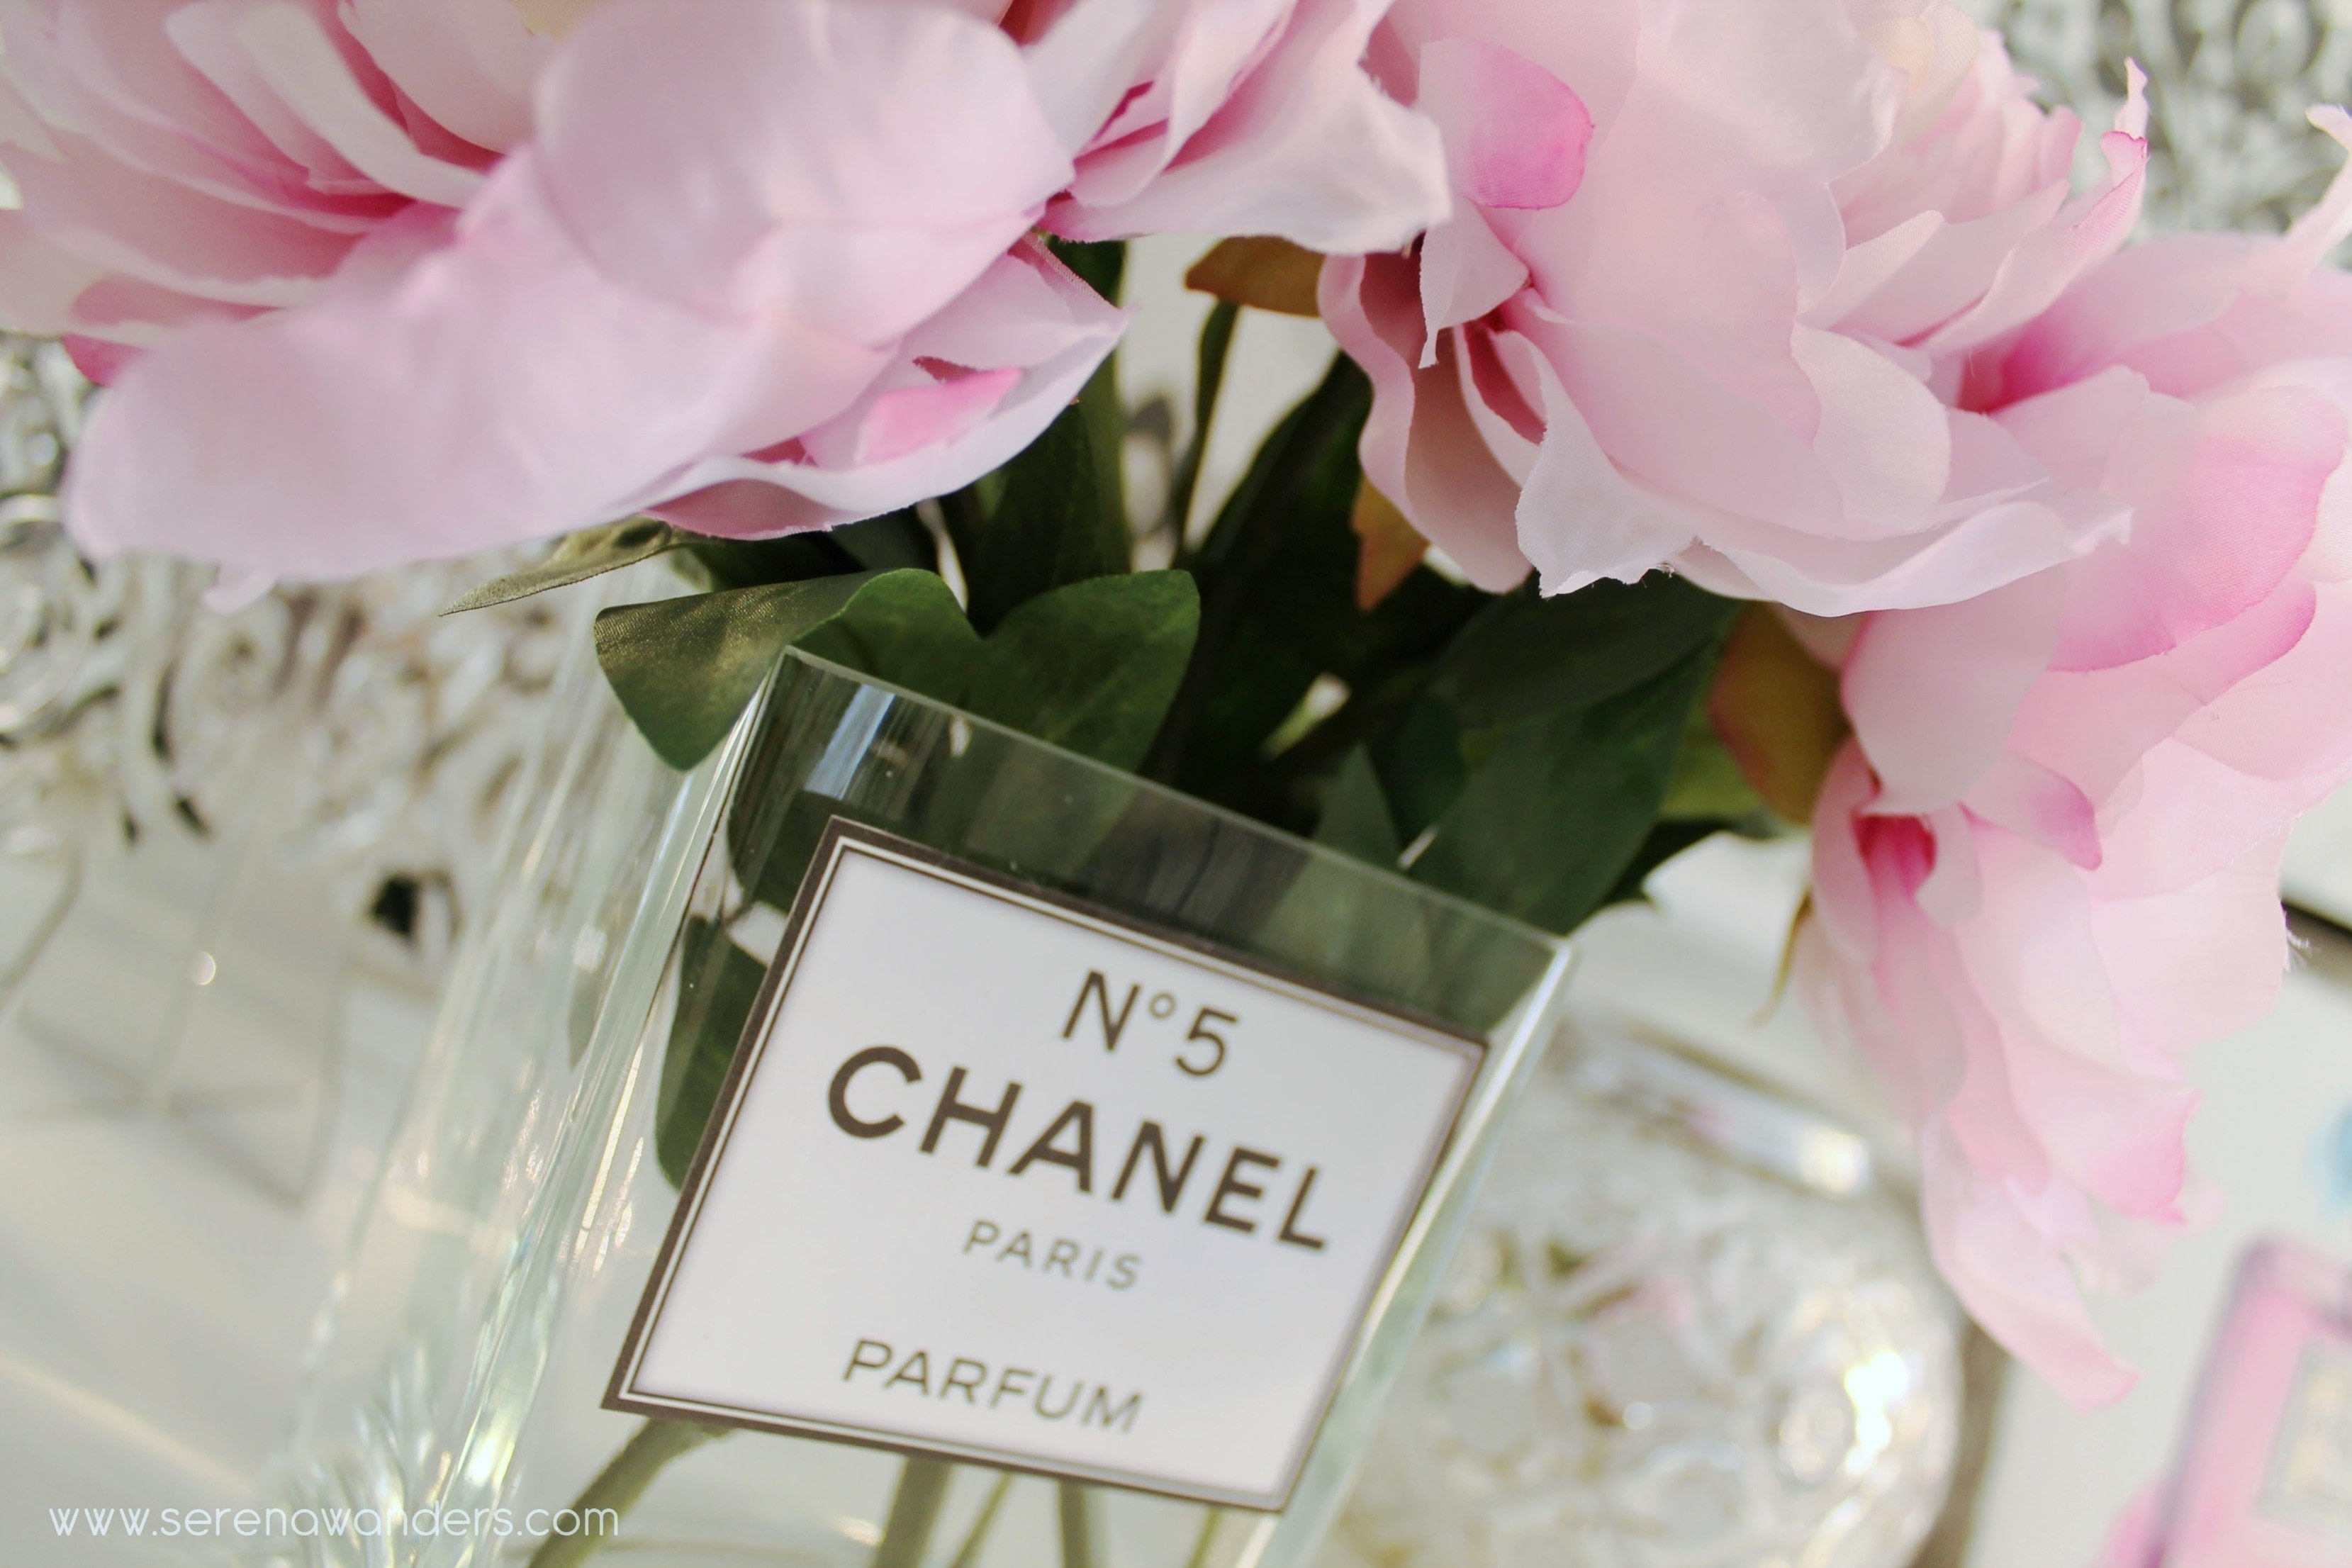 Diy Quot Chanel N 176 5 Parfum Quot Vase 183 How To Make A Vase 183 Home